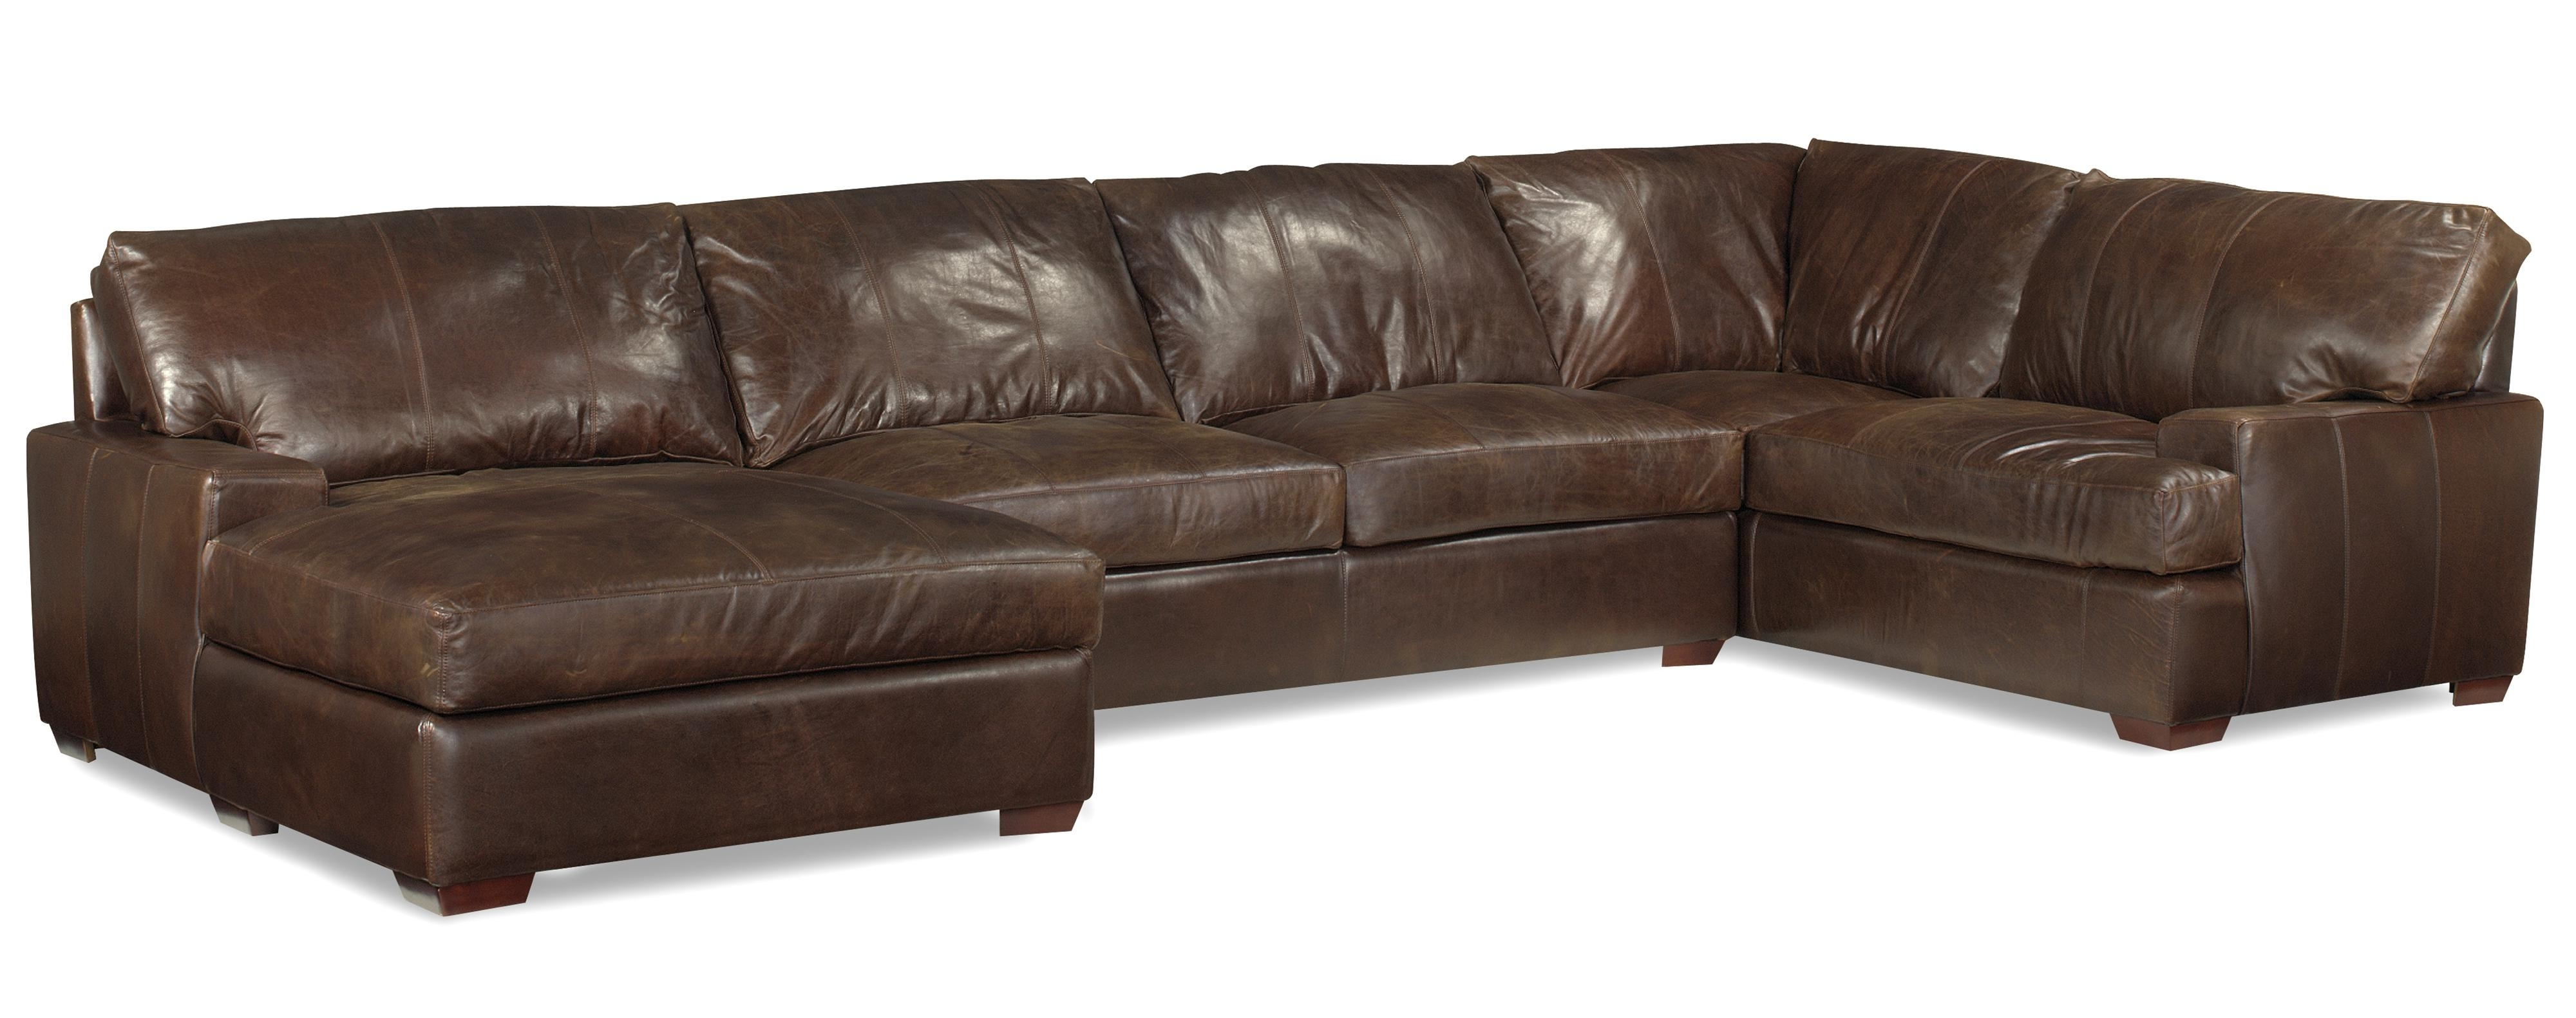 Leather Chaise Sofas With Trendy Usa Premium Leather 3635 Track Arm Sofa Chaise Sectional W/ Block (View 8 of 15)